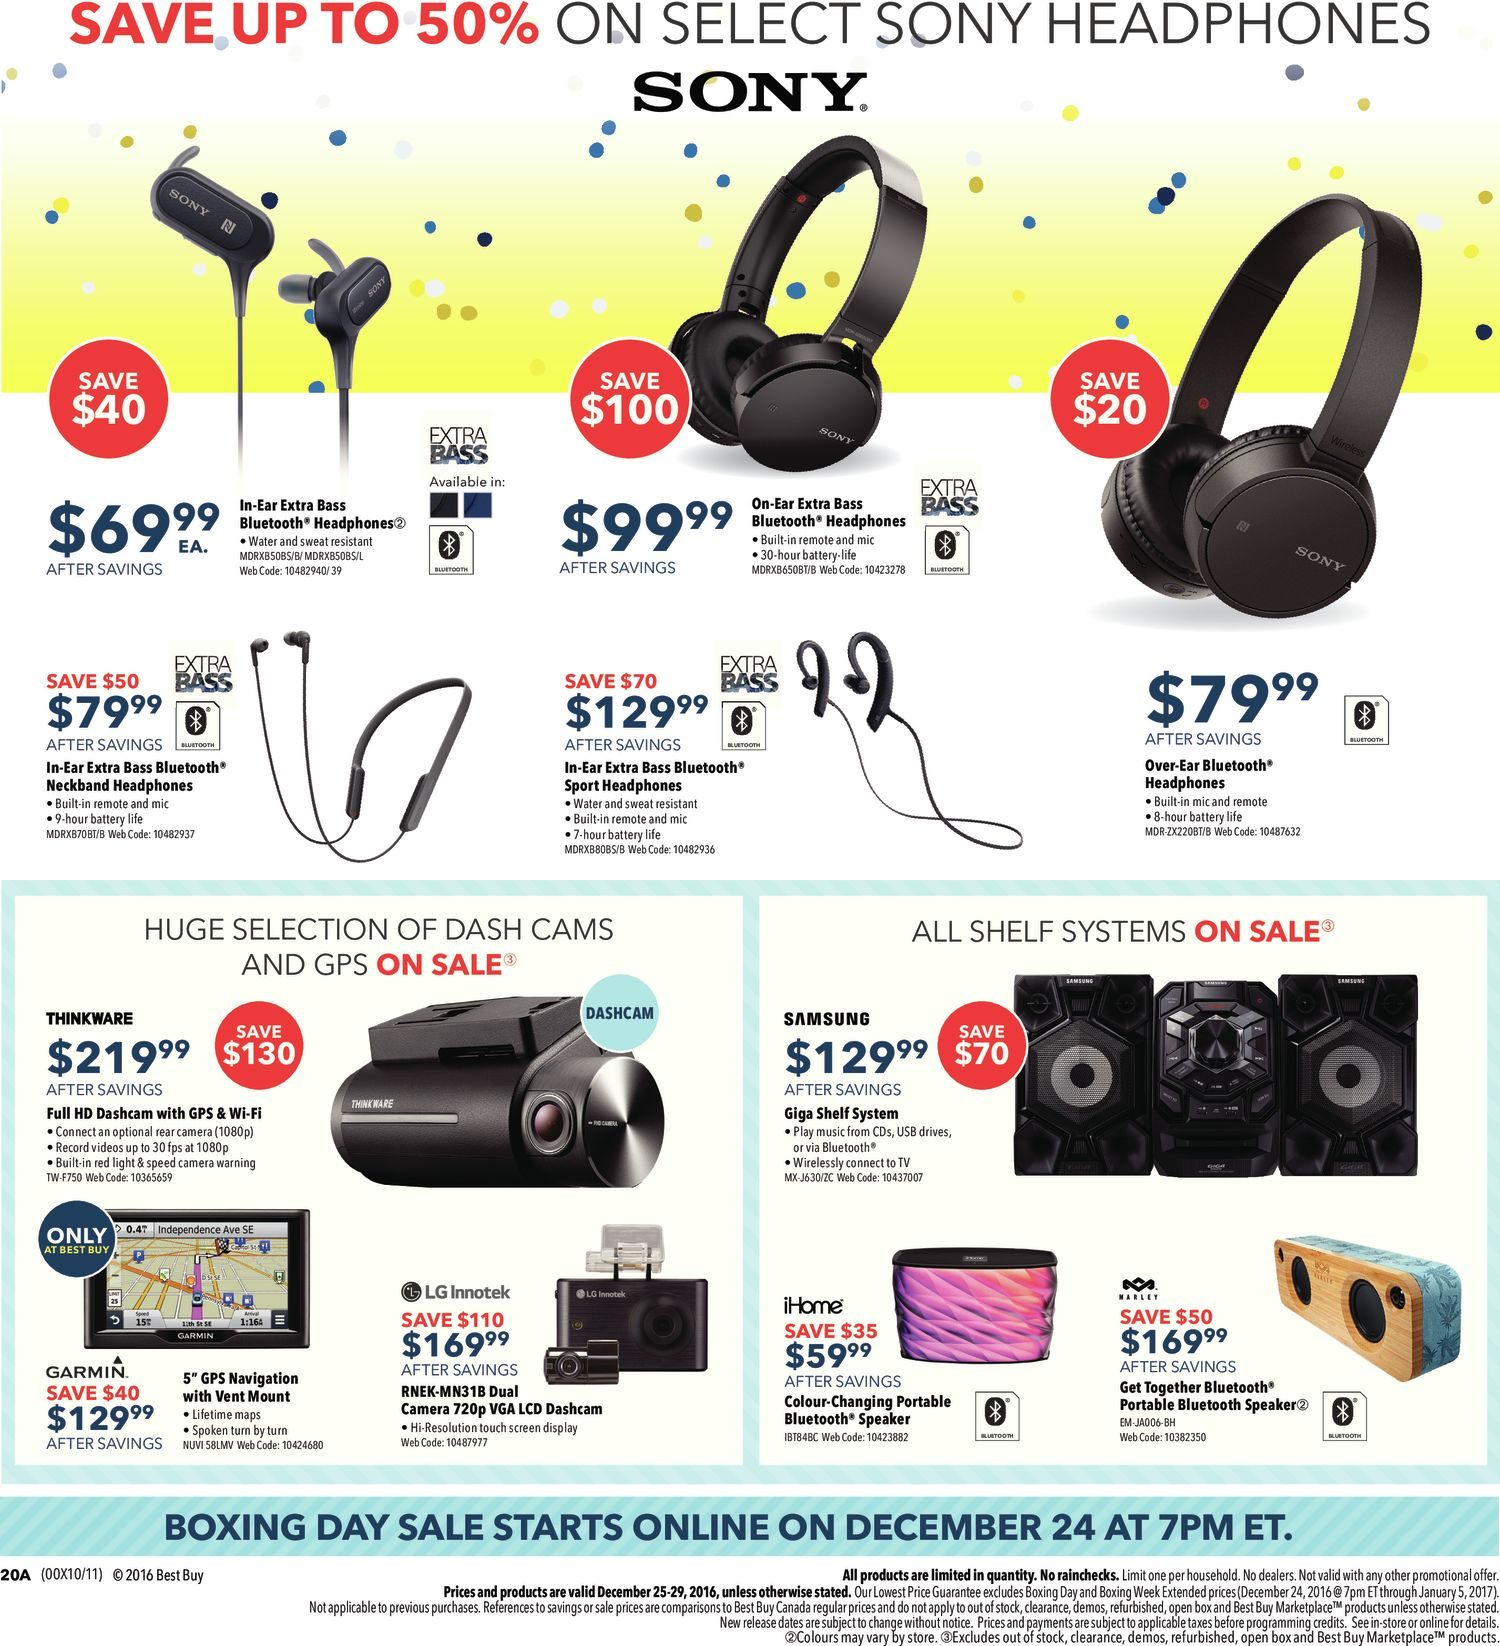 Best Buy Weekly Flyer Boxing Day Sale Dec 25 29 Sades 919 Antena Gaming Headset